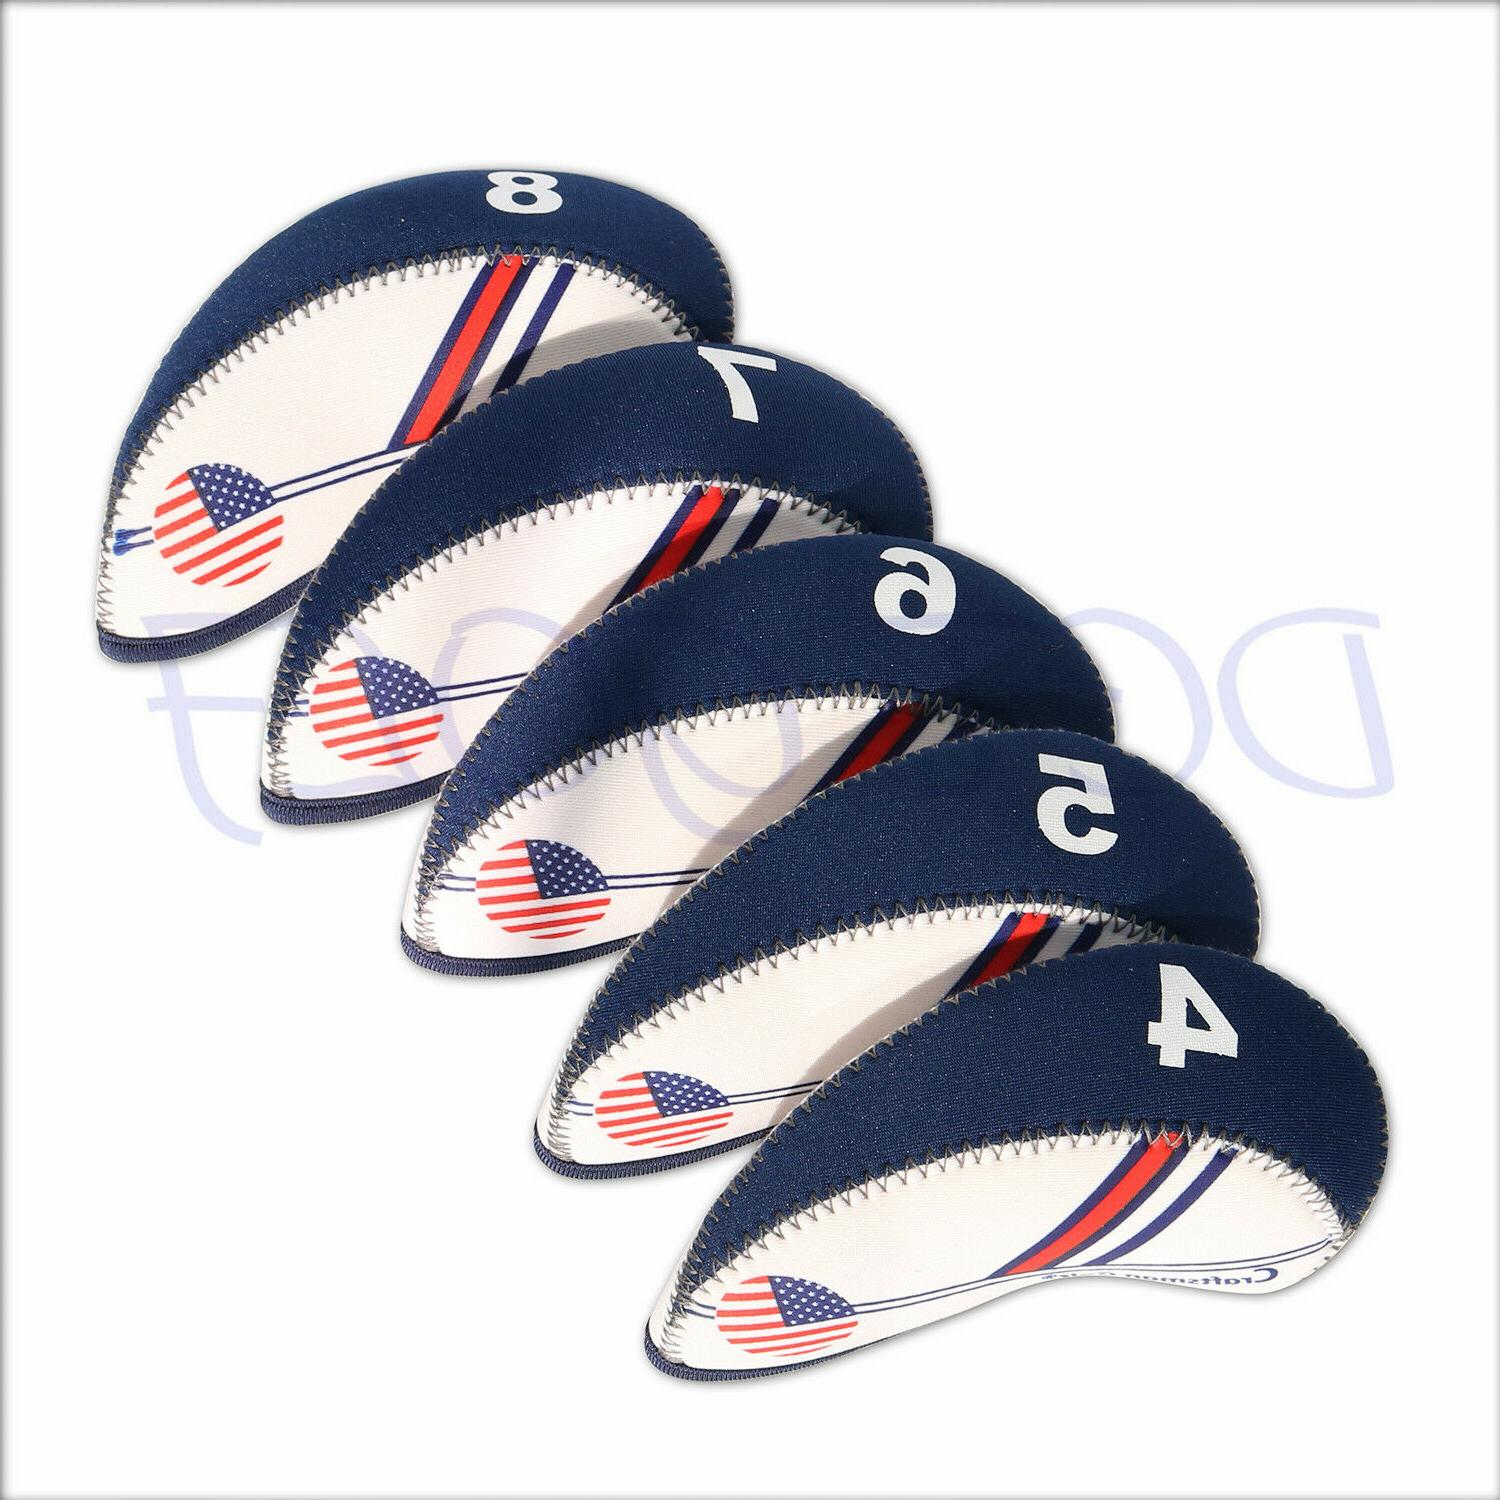 USA Head Covers Headcovers Club Protection Callaway